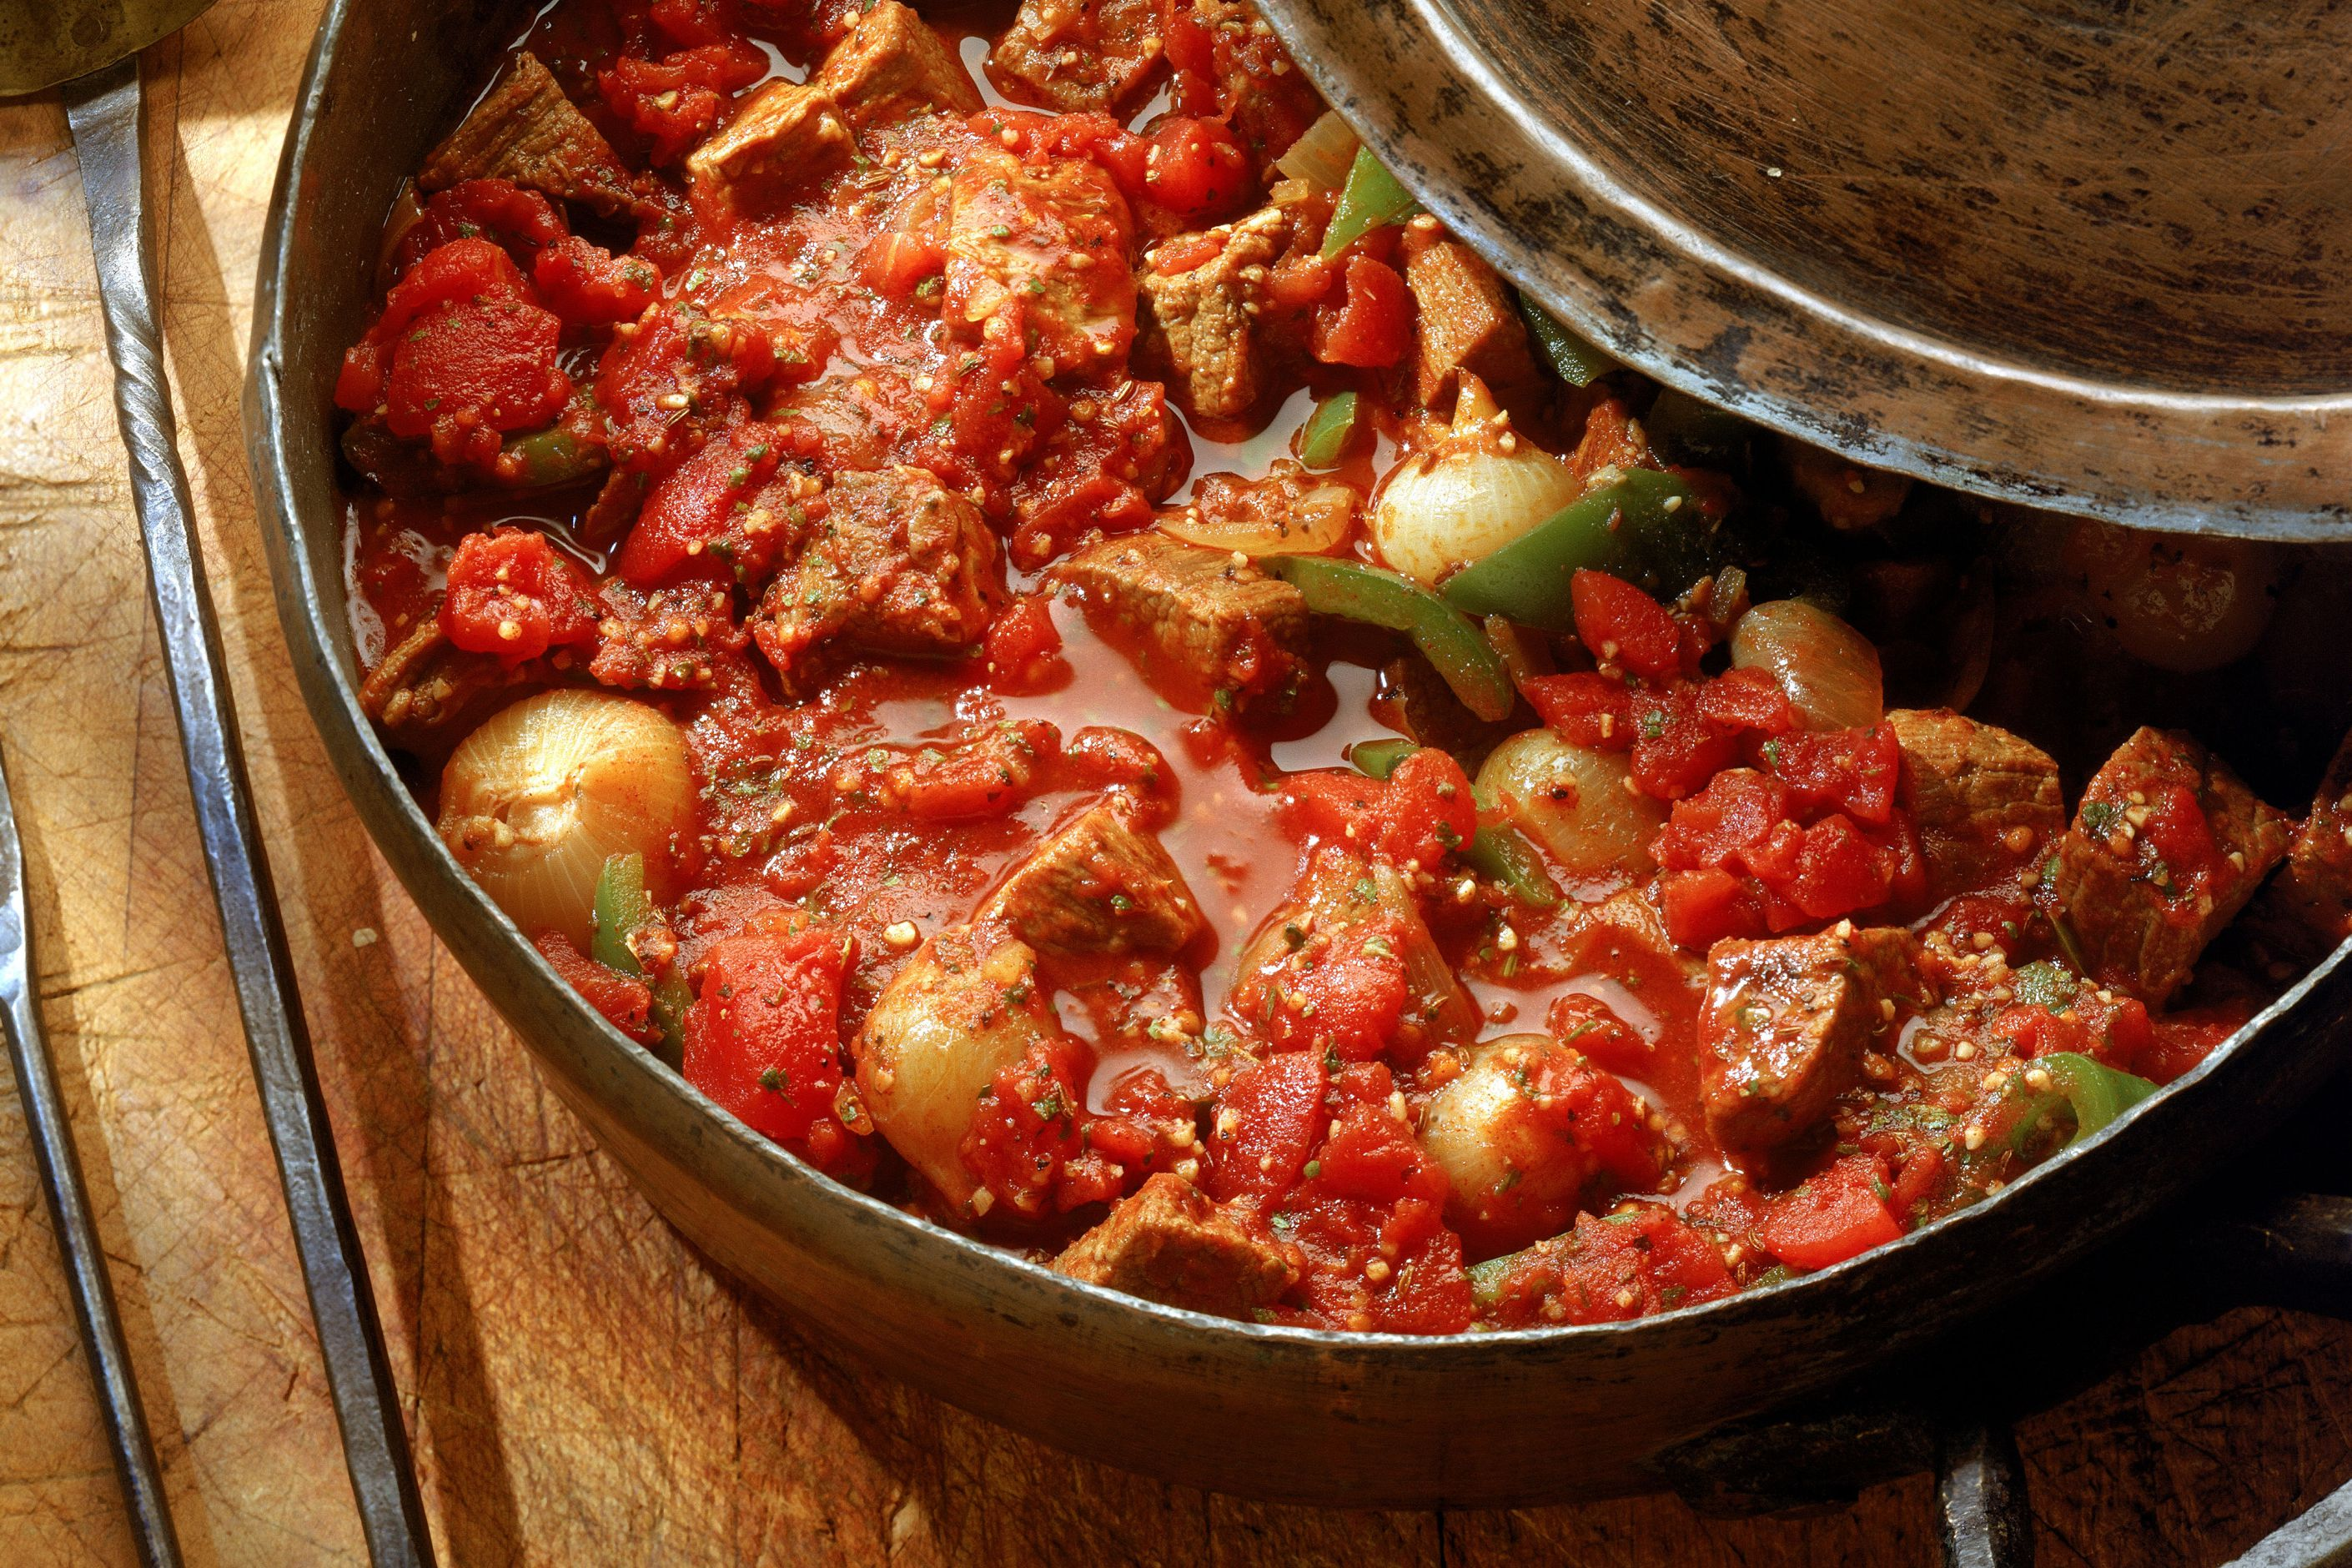 Hearty Chili With Pork and Ground Beef